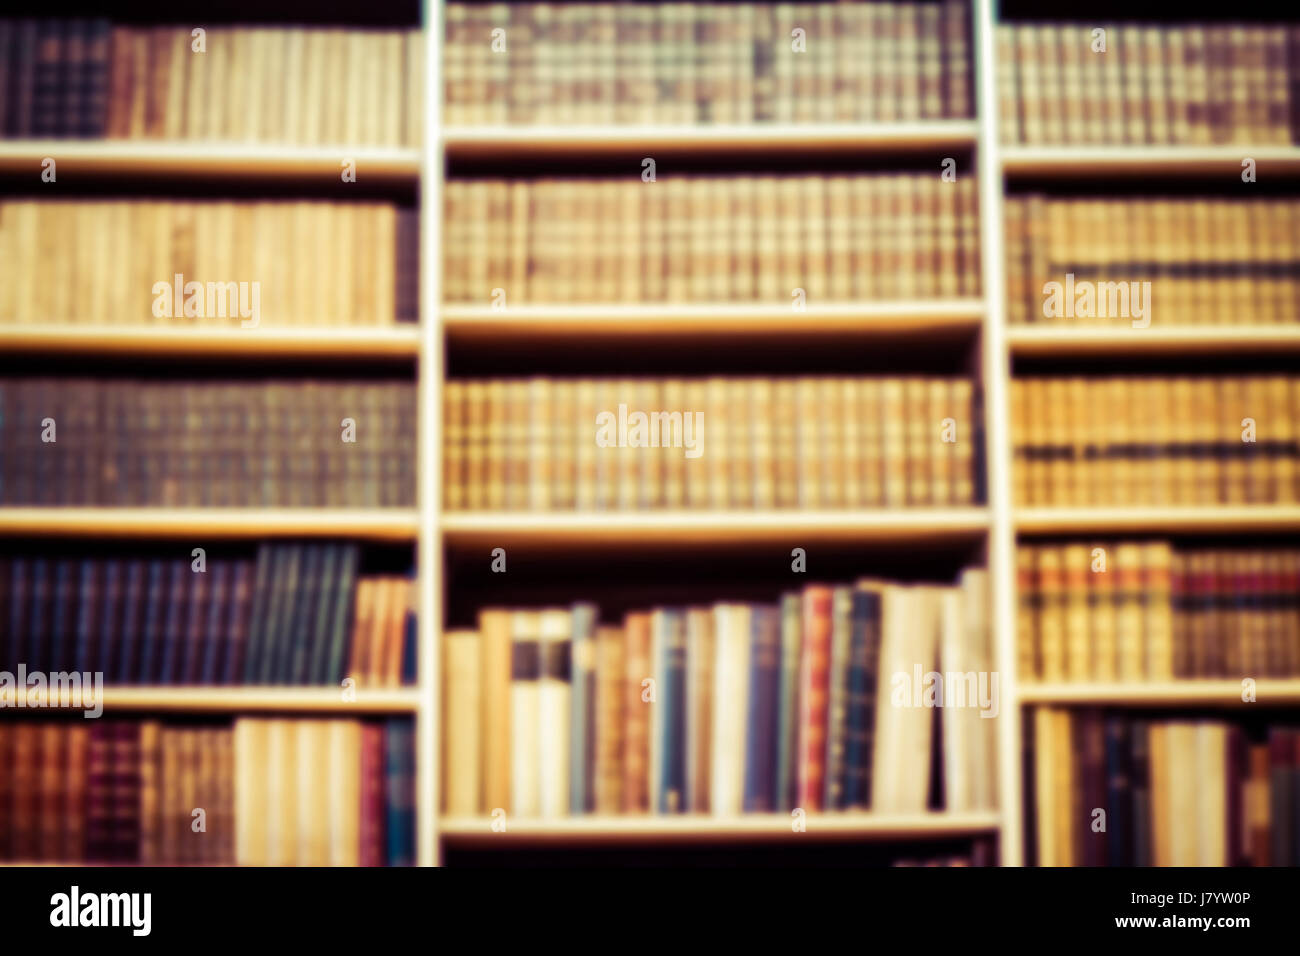 Blurred Background Bookshelf Full Of Books Concept Library